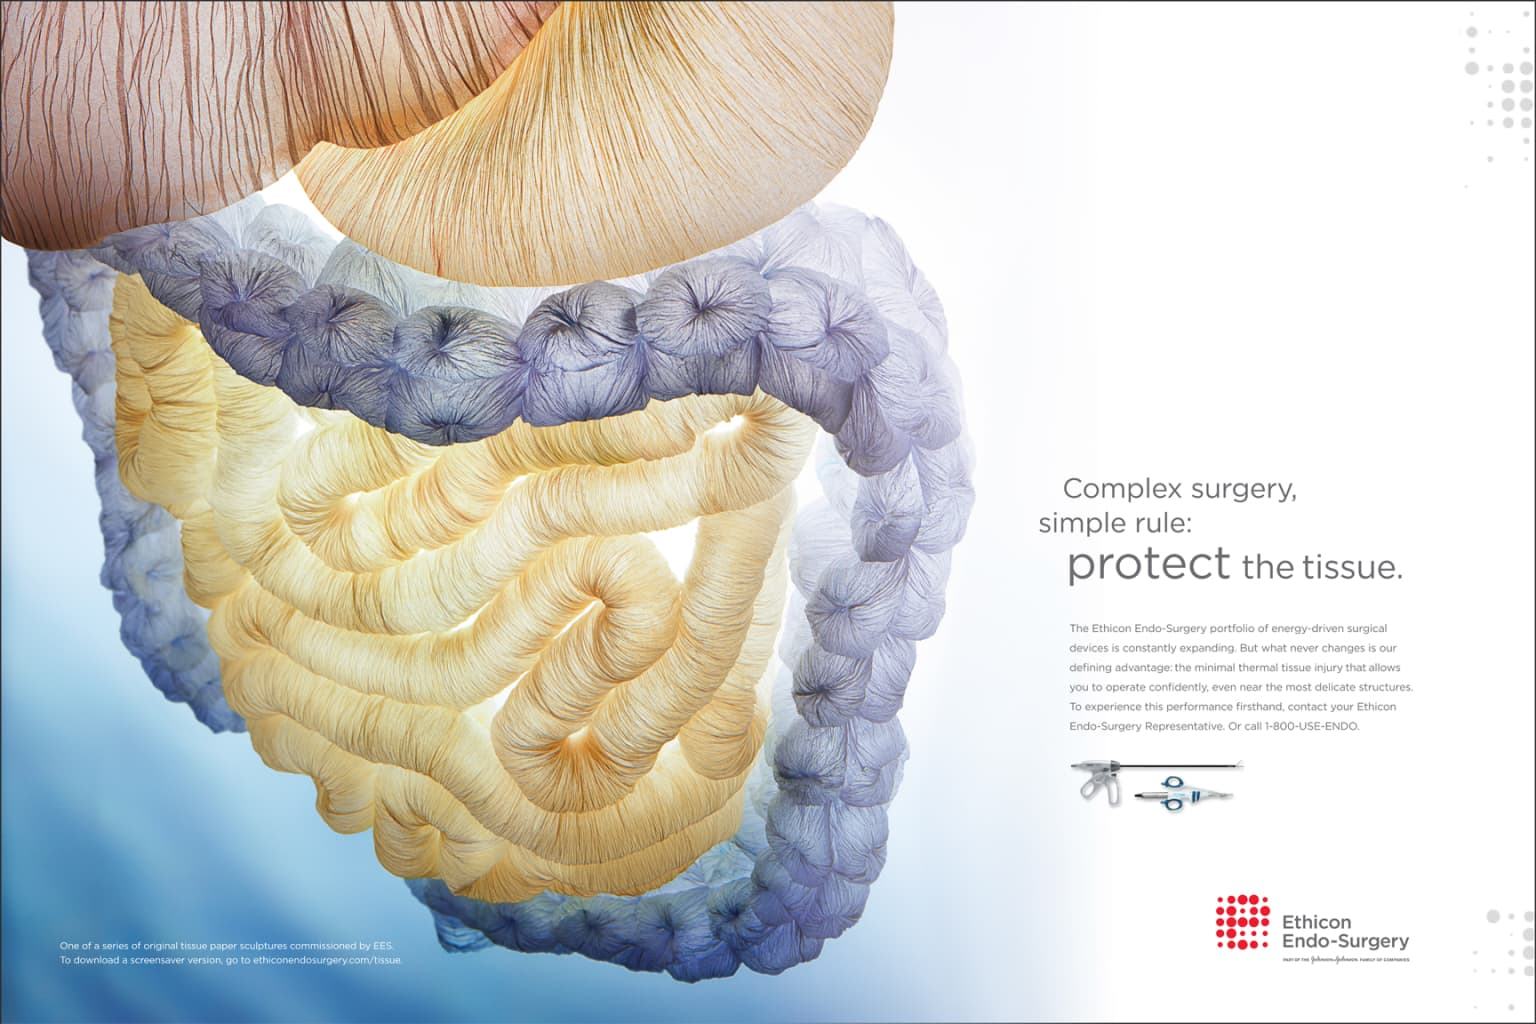 ETHICON ENDO-SURGERY - Respect the Tissue